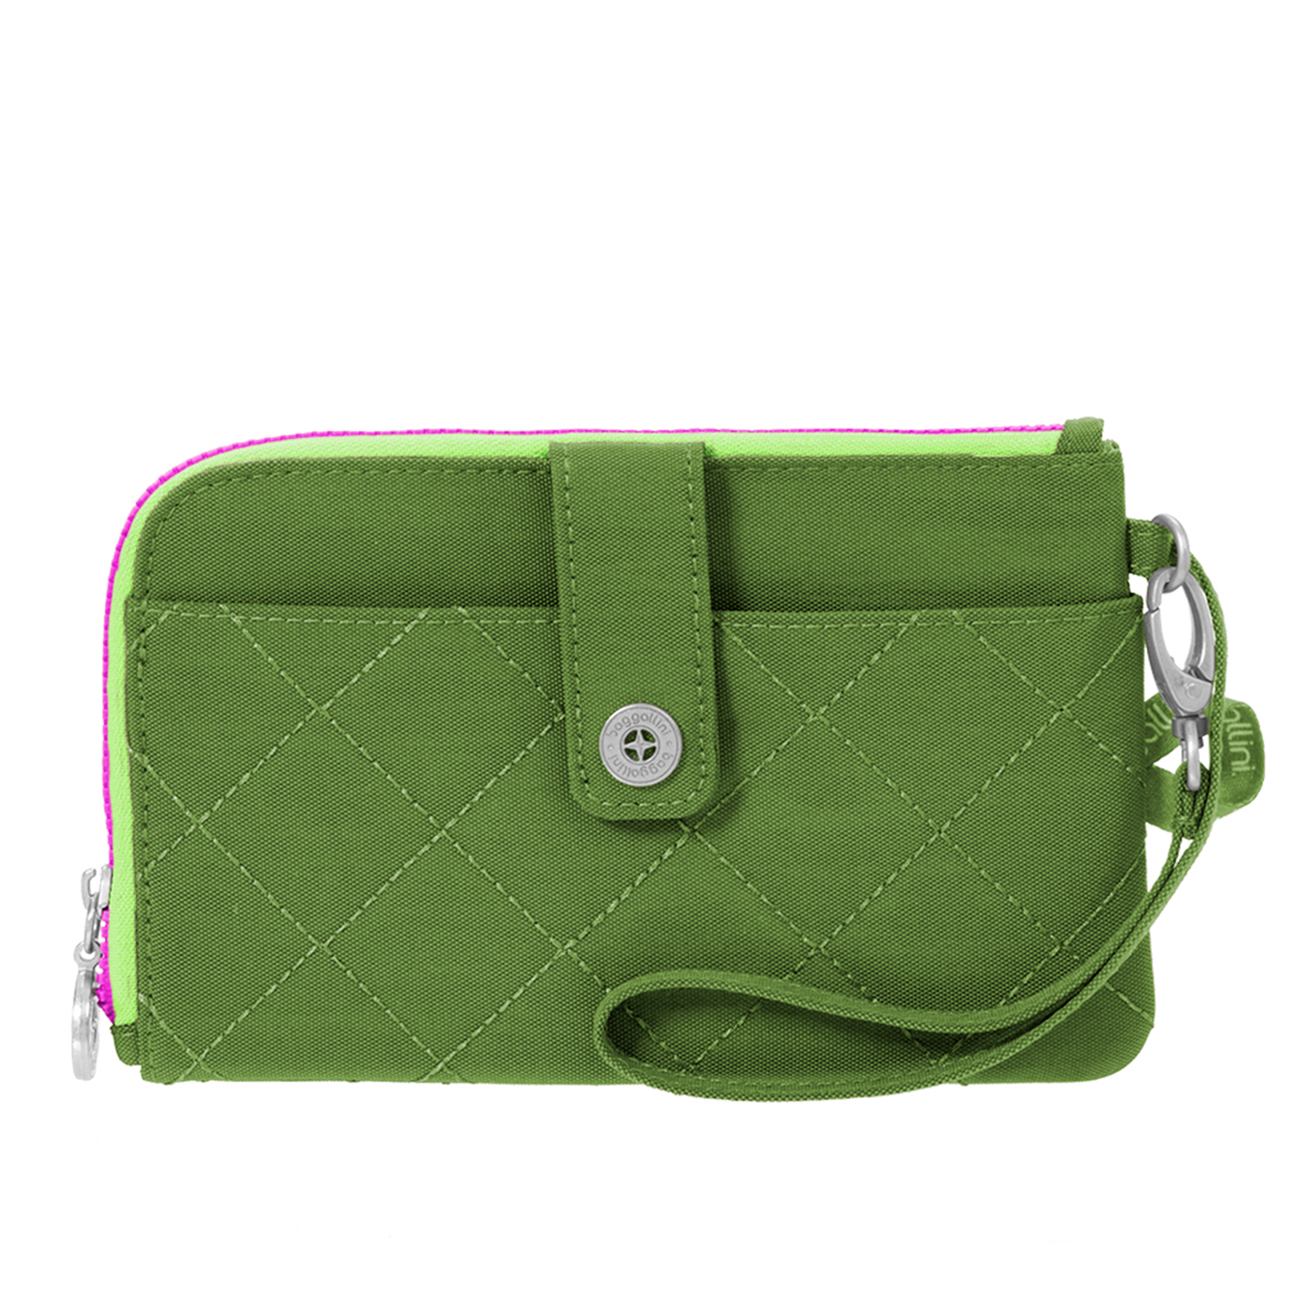 Passport Bedding Accessories Baggallini Green Kiwi Rfid Passport And Phone Wristlet